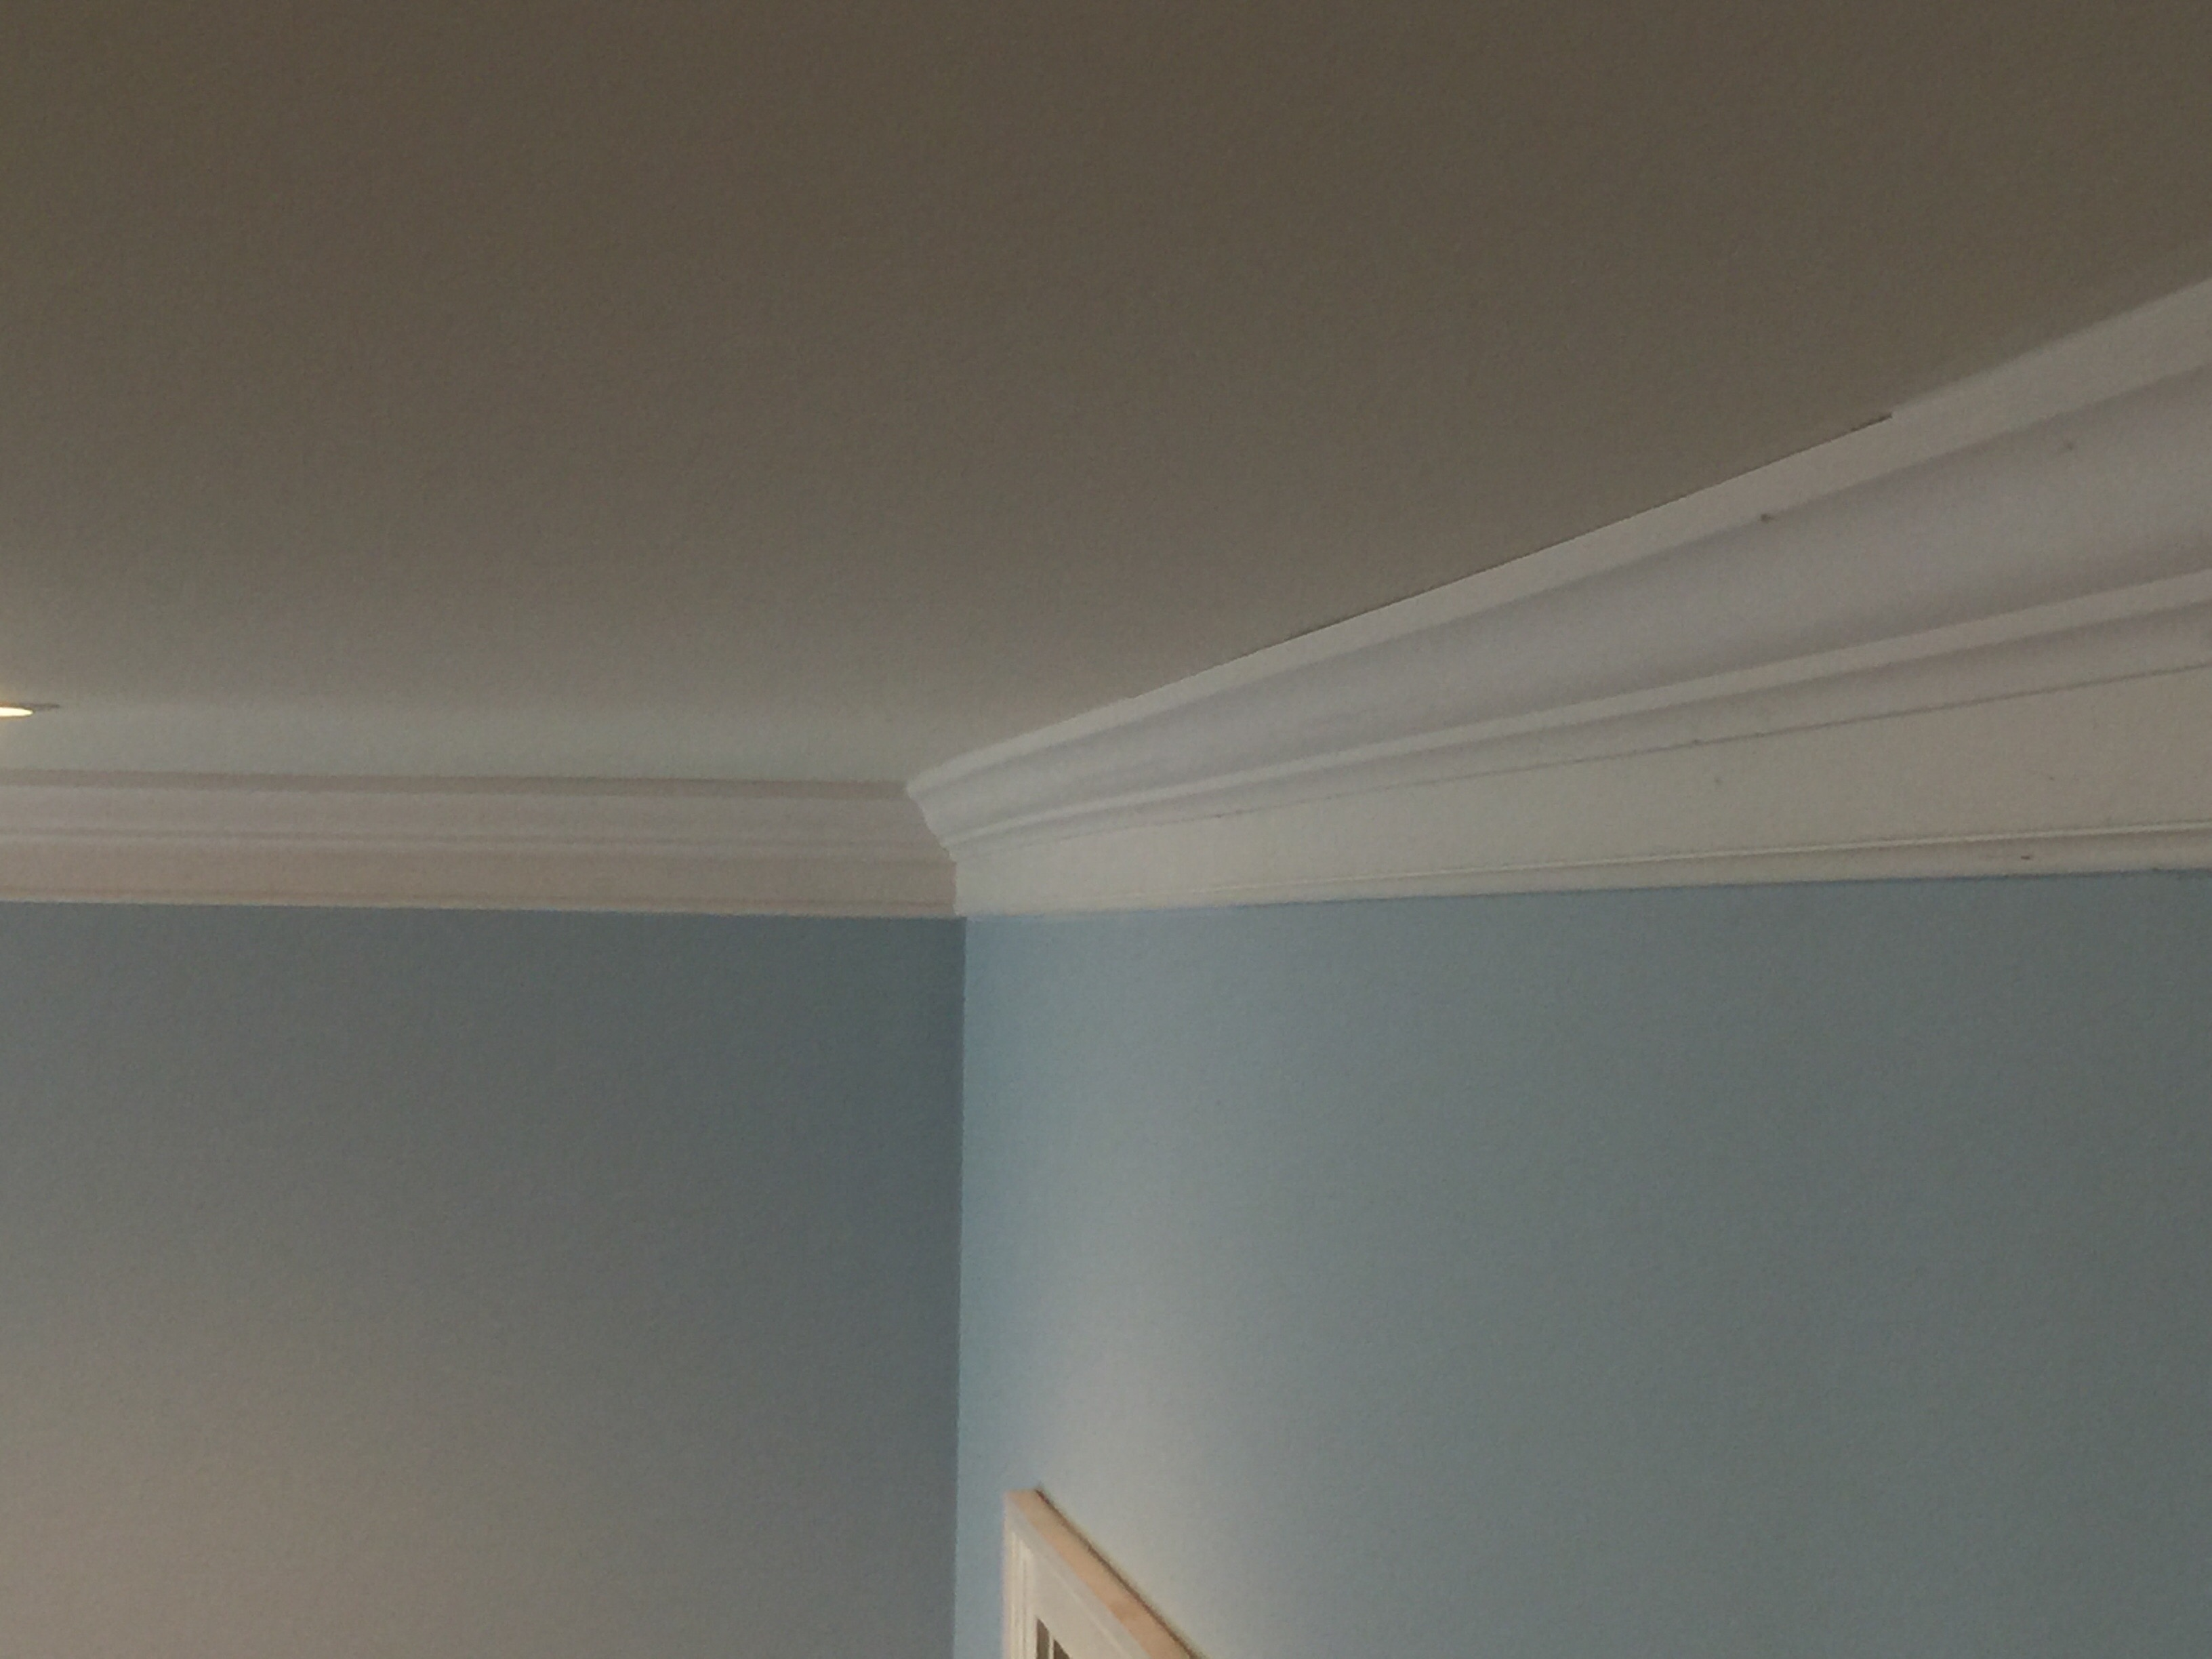 Two piece crown molding